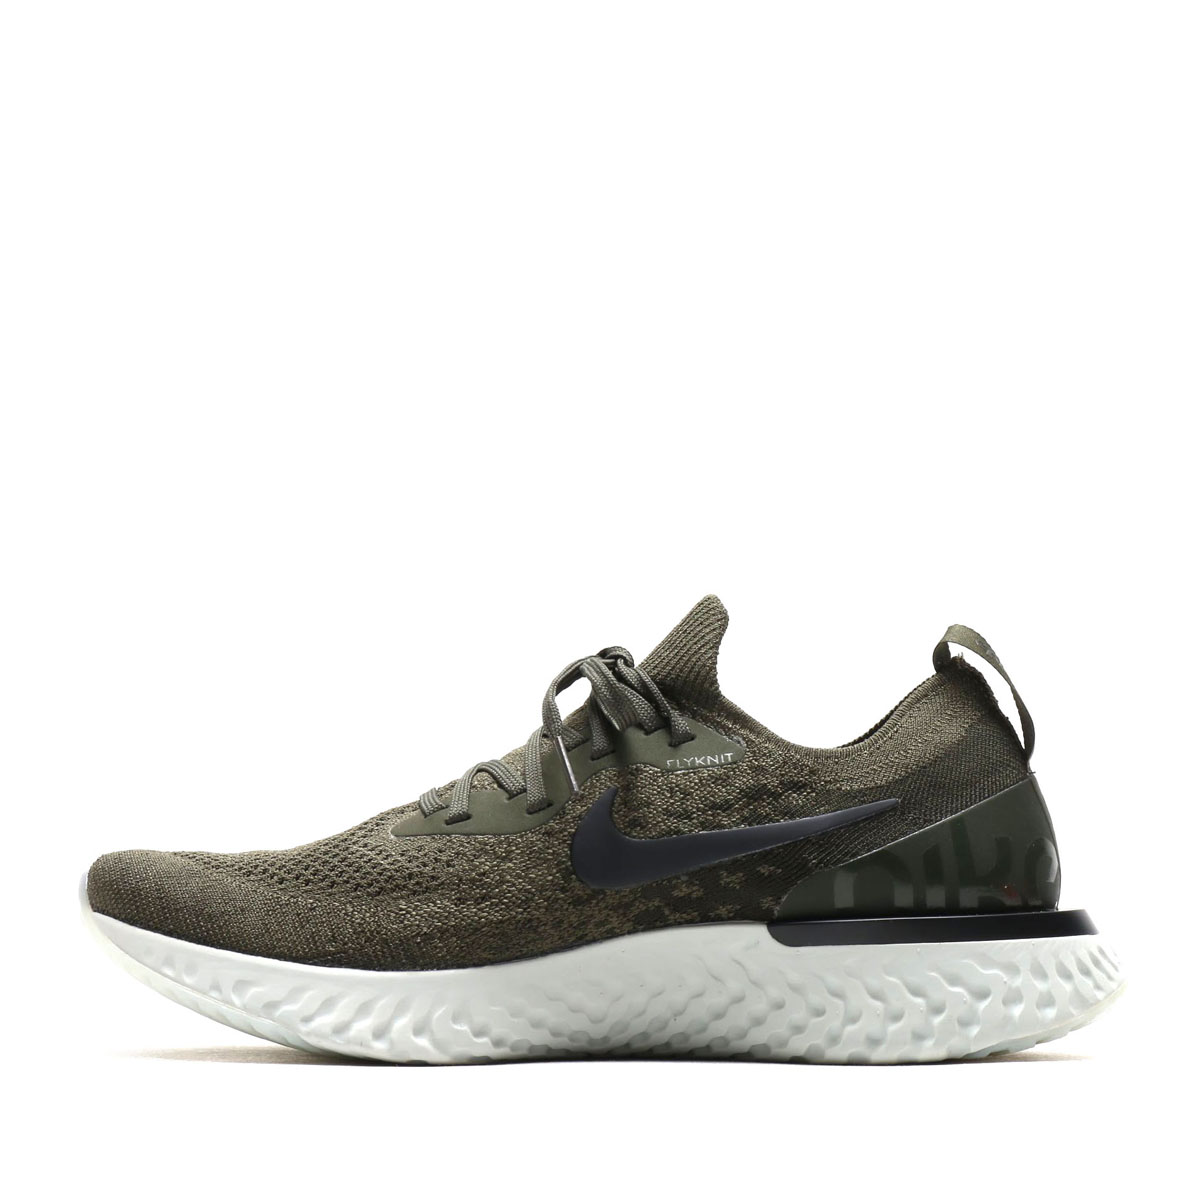 5ad1609c4459 NIKE EPIC REACT FLYKNIT (Kie Ney pick re-act fly knit) (CARGO KHAKI BLACK- SEQUOIA-LIGHT SILVER) 18SU-S